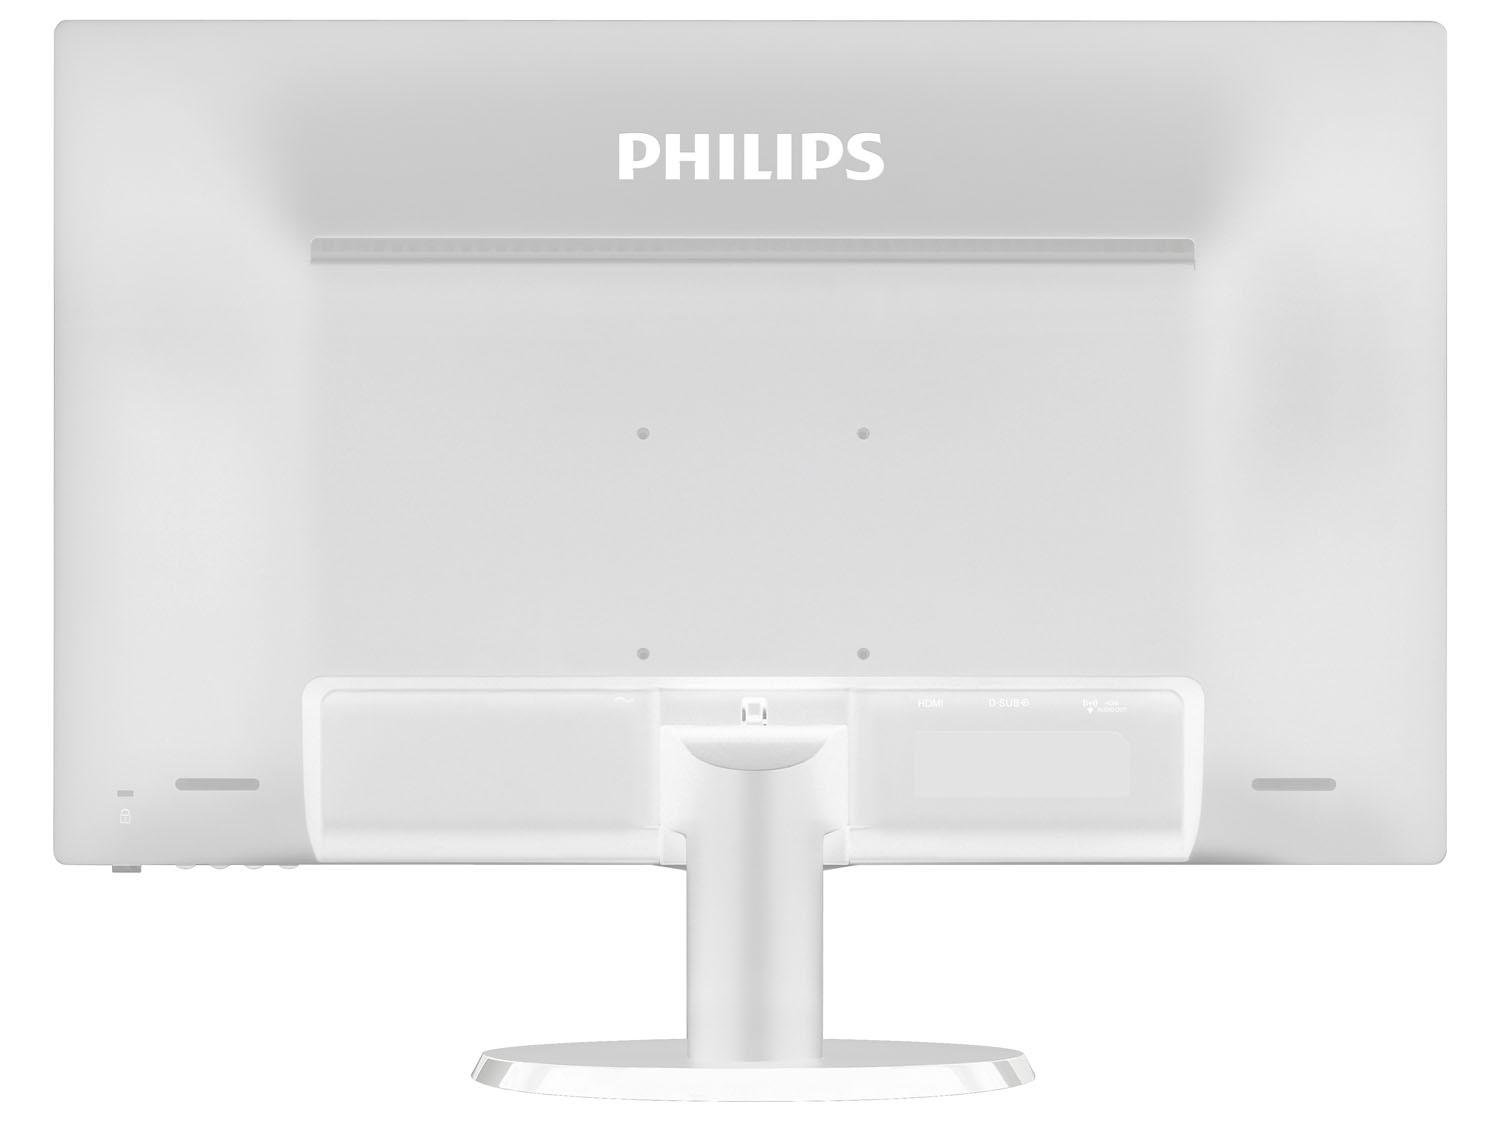 Foto 3 - Monitor para PC Full HD Philips LCD Widescreen - 21,5 223V5LHSW